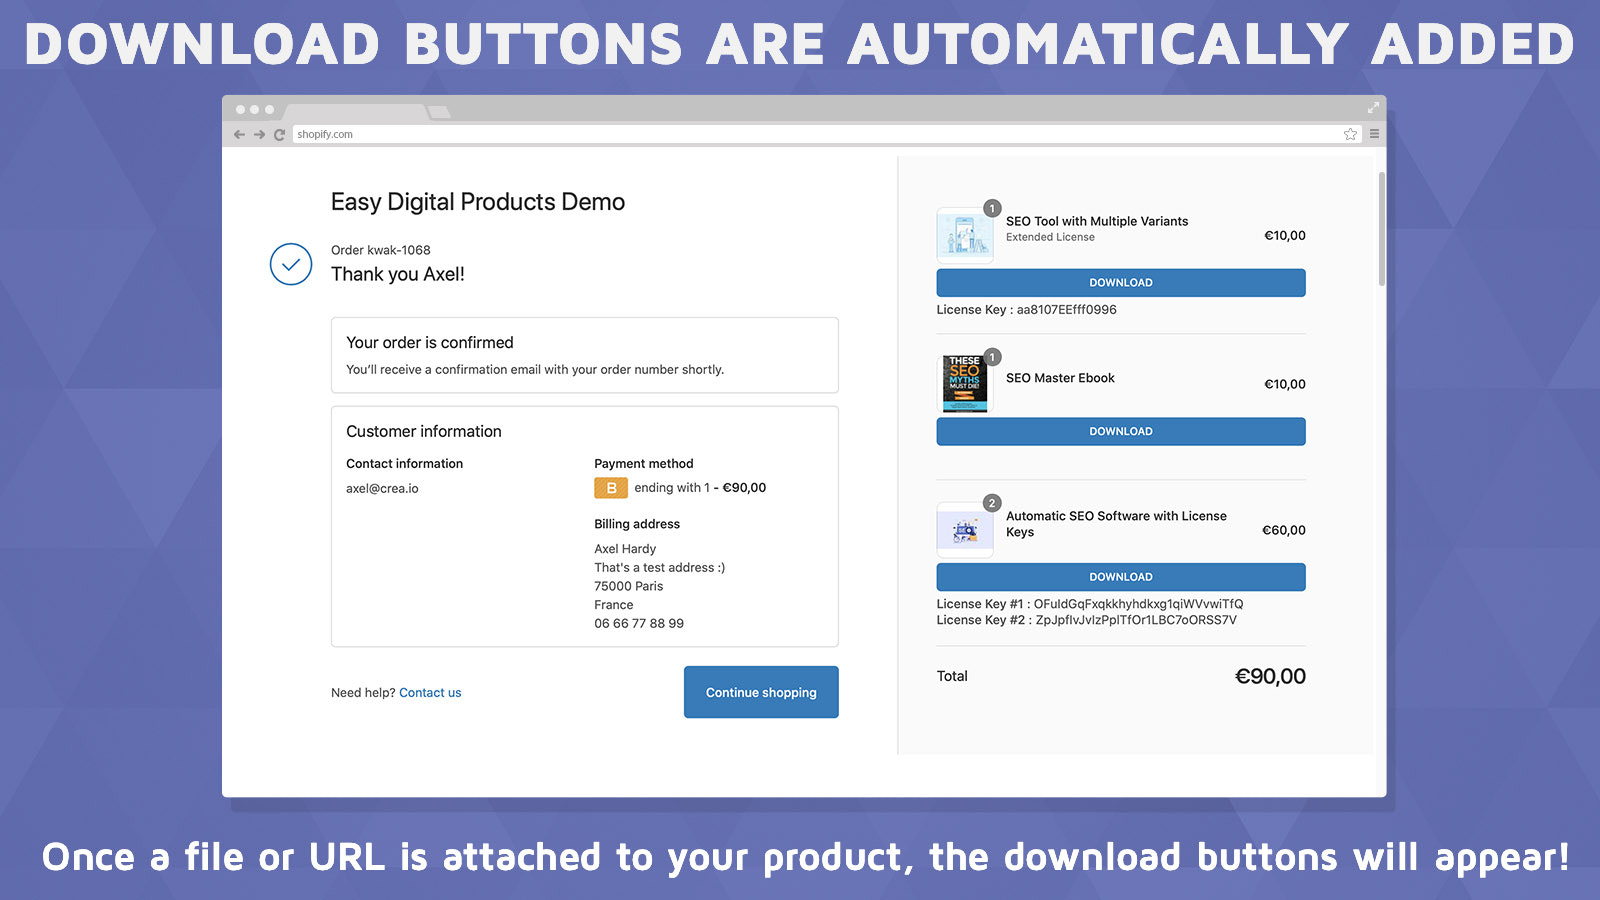 Downloads buttons inside the order's confirmation page